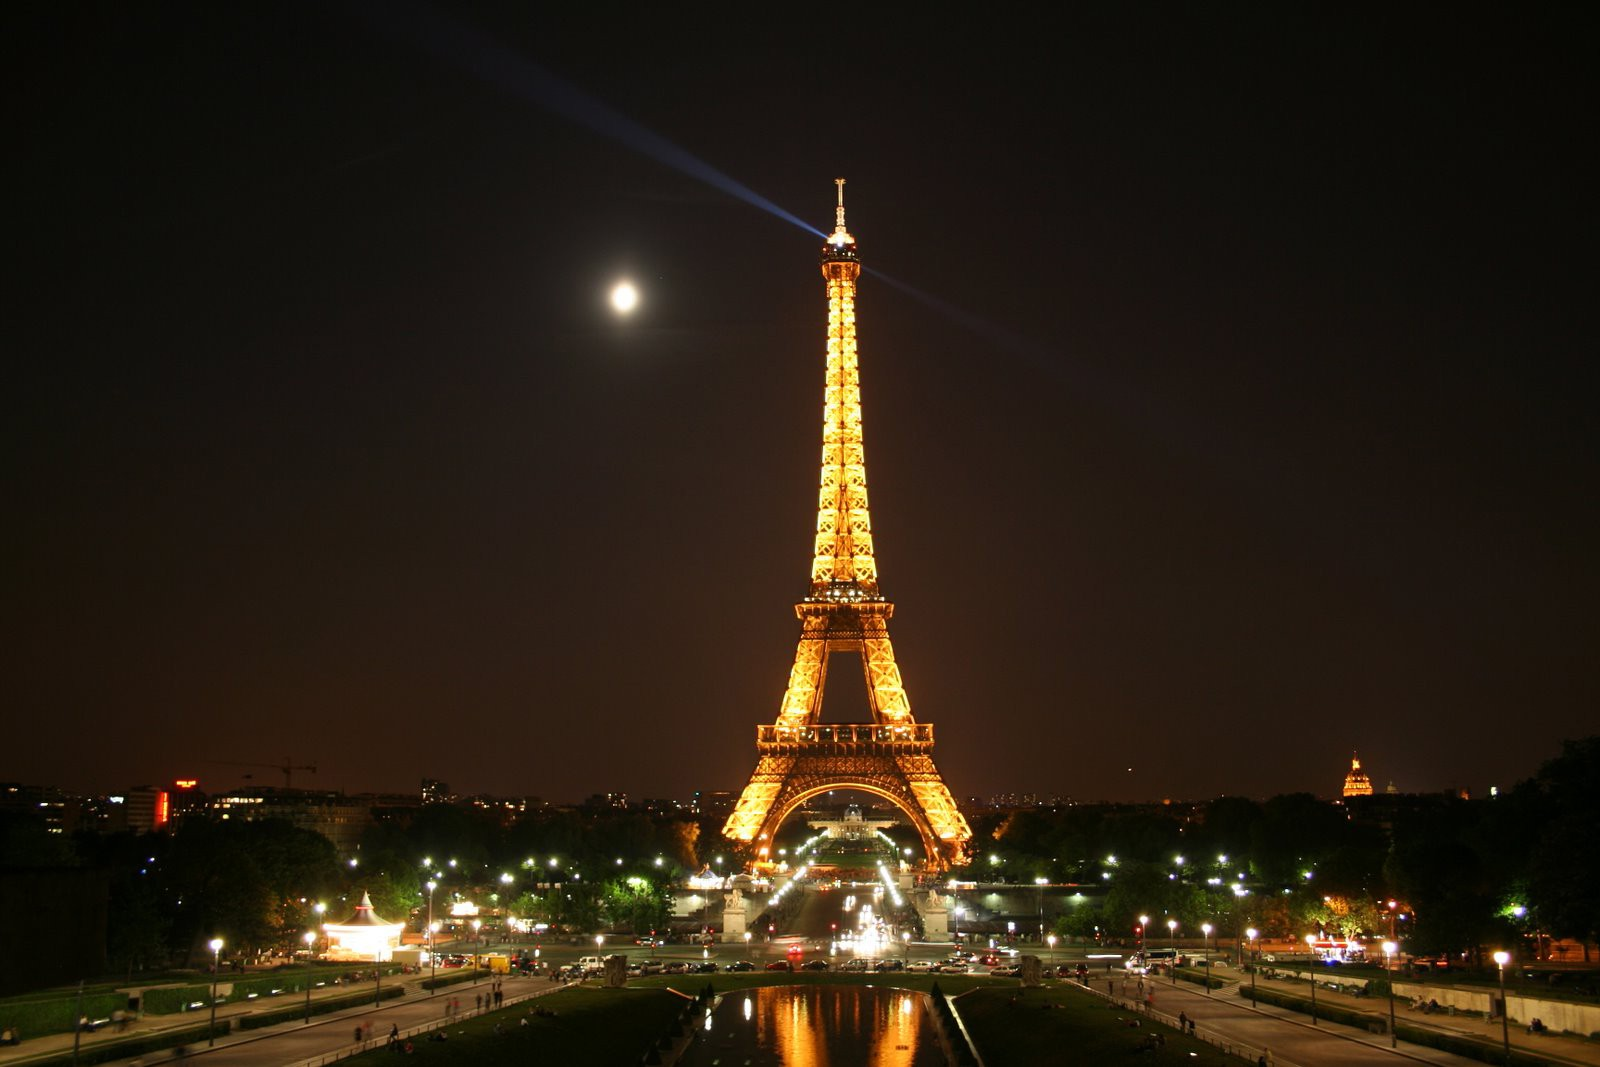 Free Download Eiffel Tower At Night 1600x1067 For Your Desktop Mobile Tablet Explore 46 Paris Eiffel Tower Hd Wallpaper Eiffel Tower Wallpapers Eiffel Tower Hd Wallpapers Cute Eiffel Tower Wallpapers